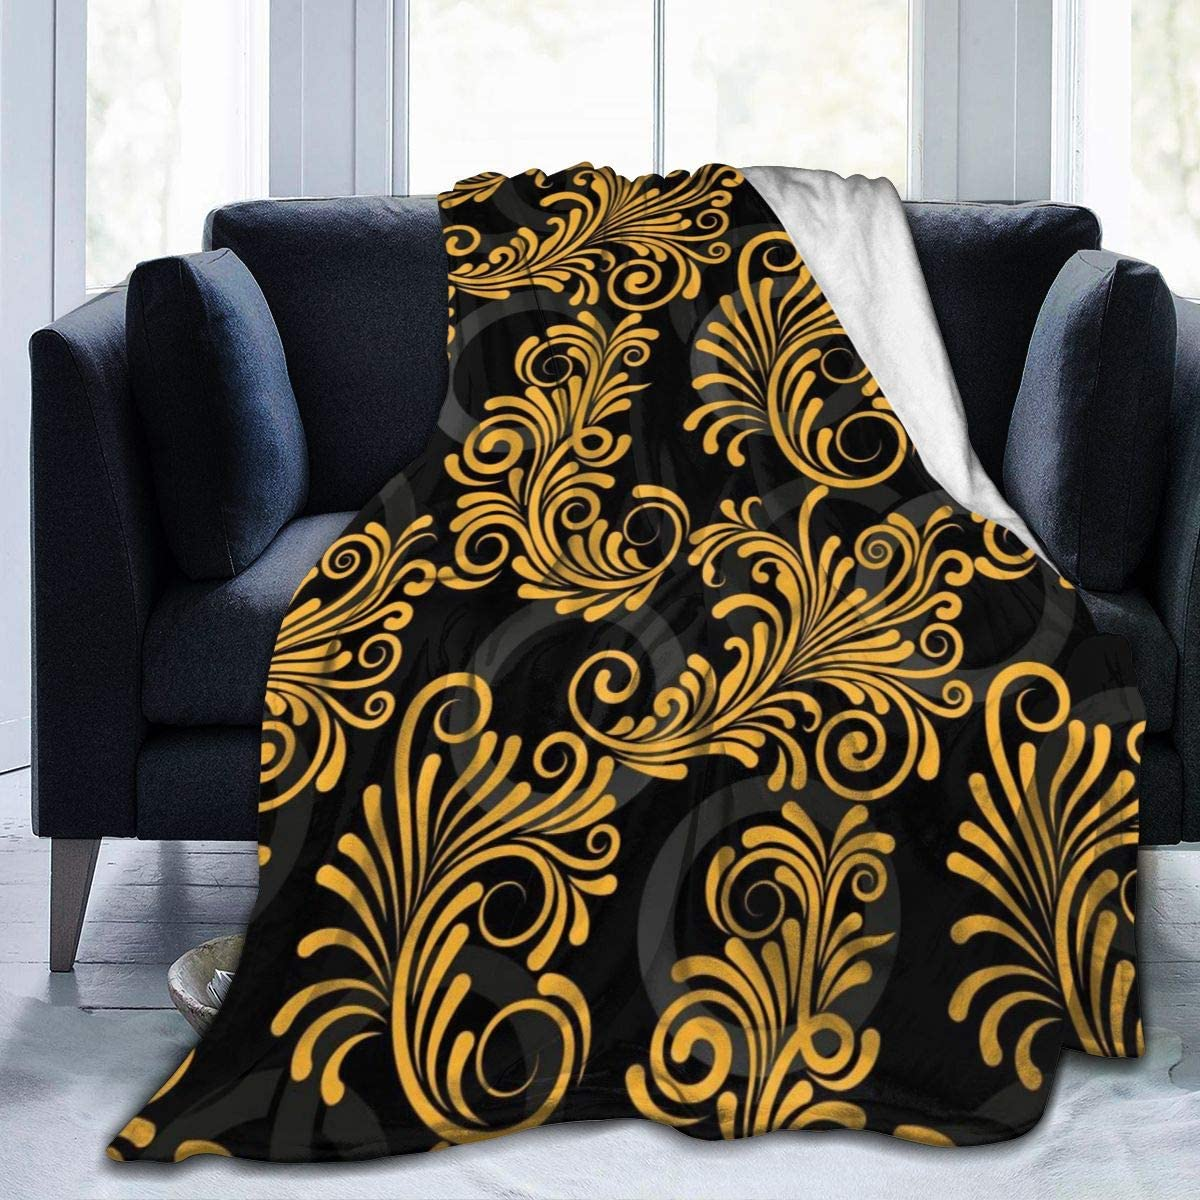 Micro Fleece Plush Soft Baby Blanket Endless Abstract Golden Lines Fluffy Warm Toddler Bed/Crib Blanket Lightweight Flannel Daycare Nap Kids Sleeping Tummy Time Throw Blanket Girls Boy Kid/Baby